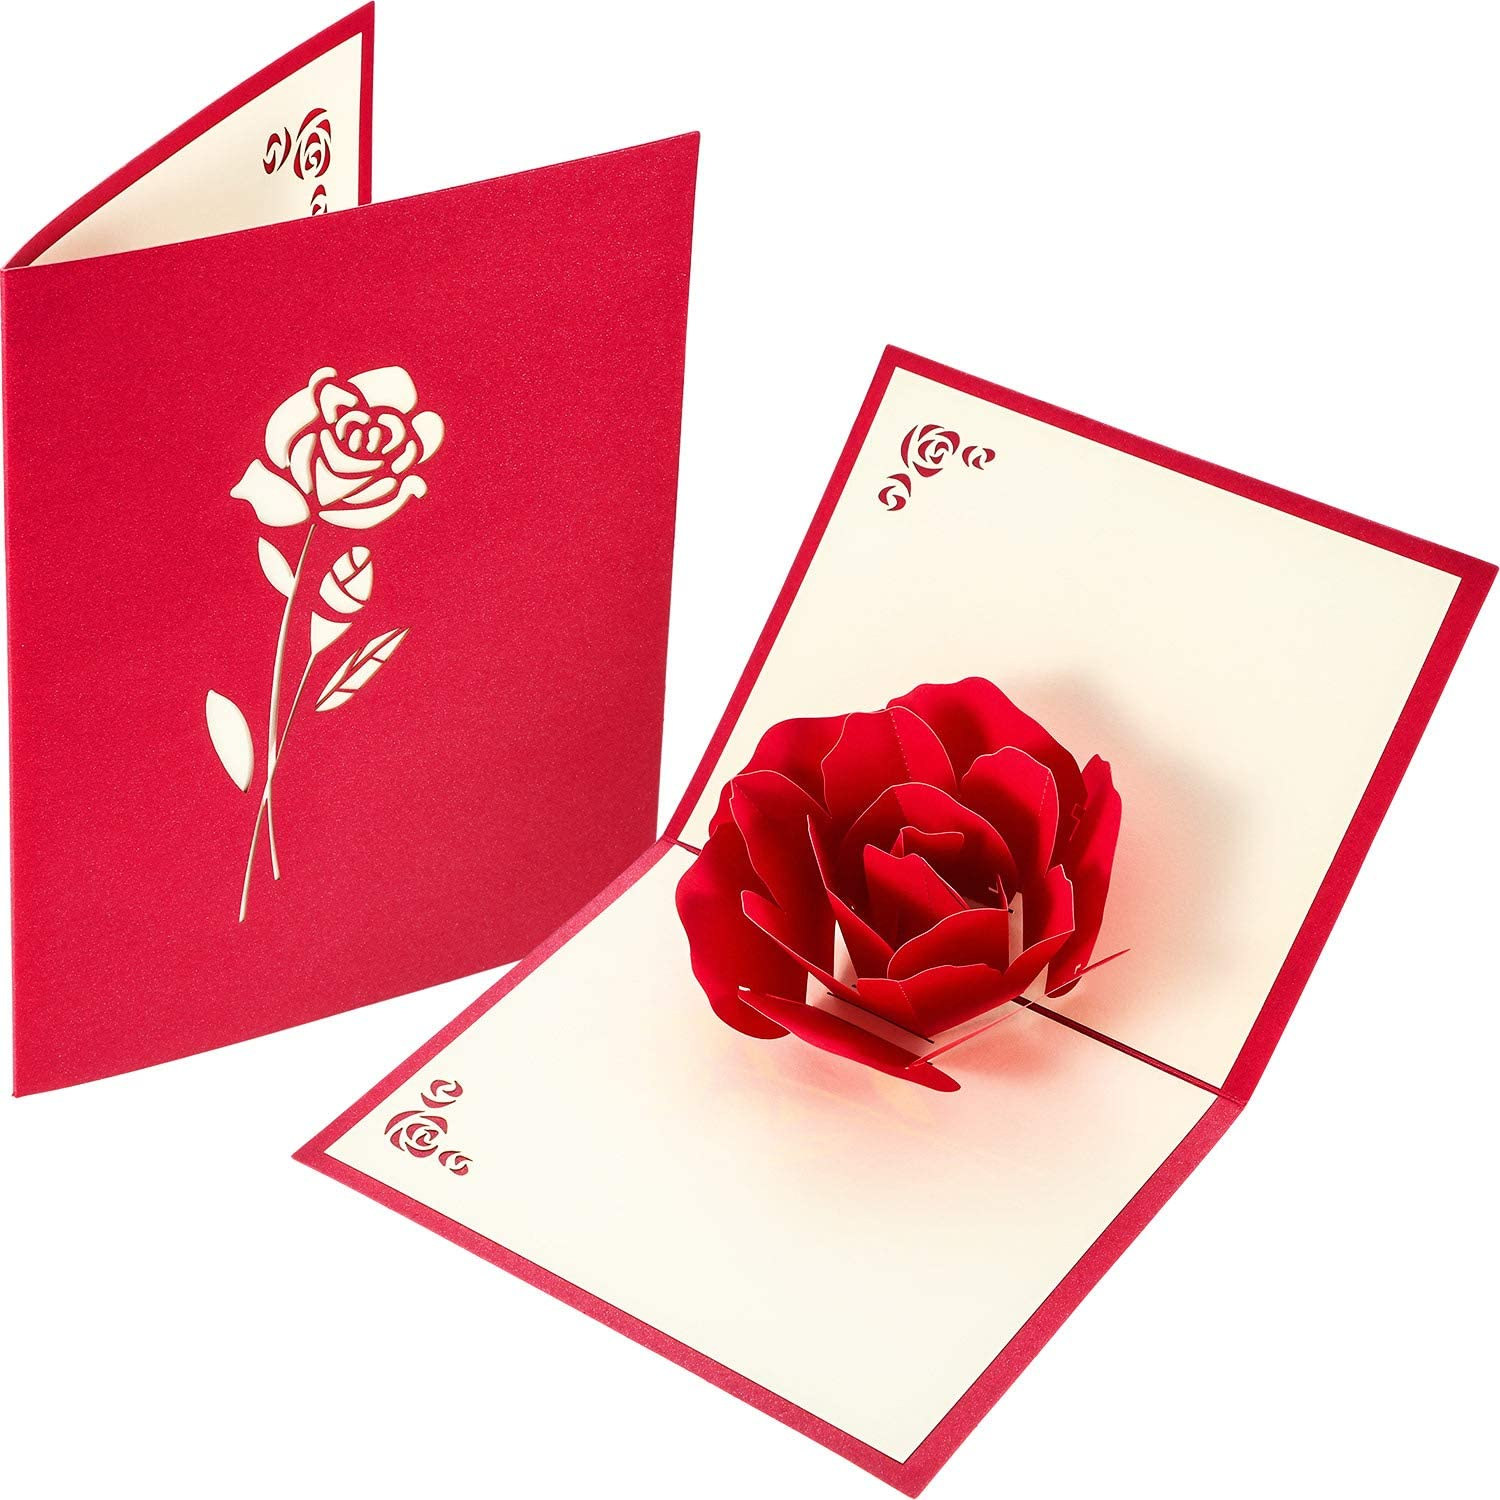 Amazon Com 3d Greeting Card 3d Rose Pop Up Greeting Card Rose Card And Valentines Cards For Valentine S Day Birthday Anniversary Invitation Wedding Love Gifts Valentine S Day Office Products